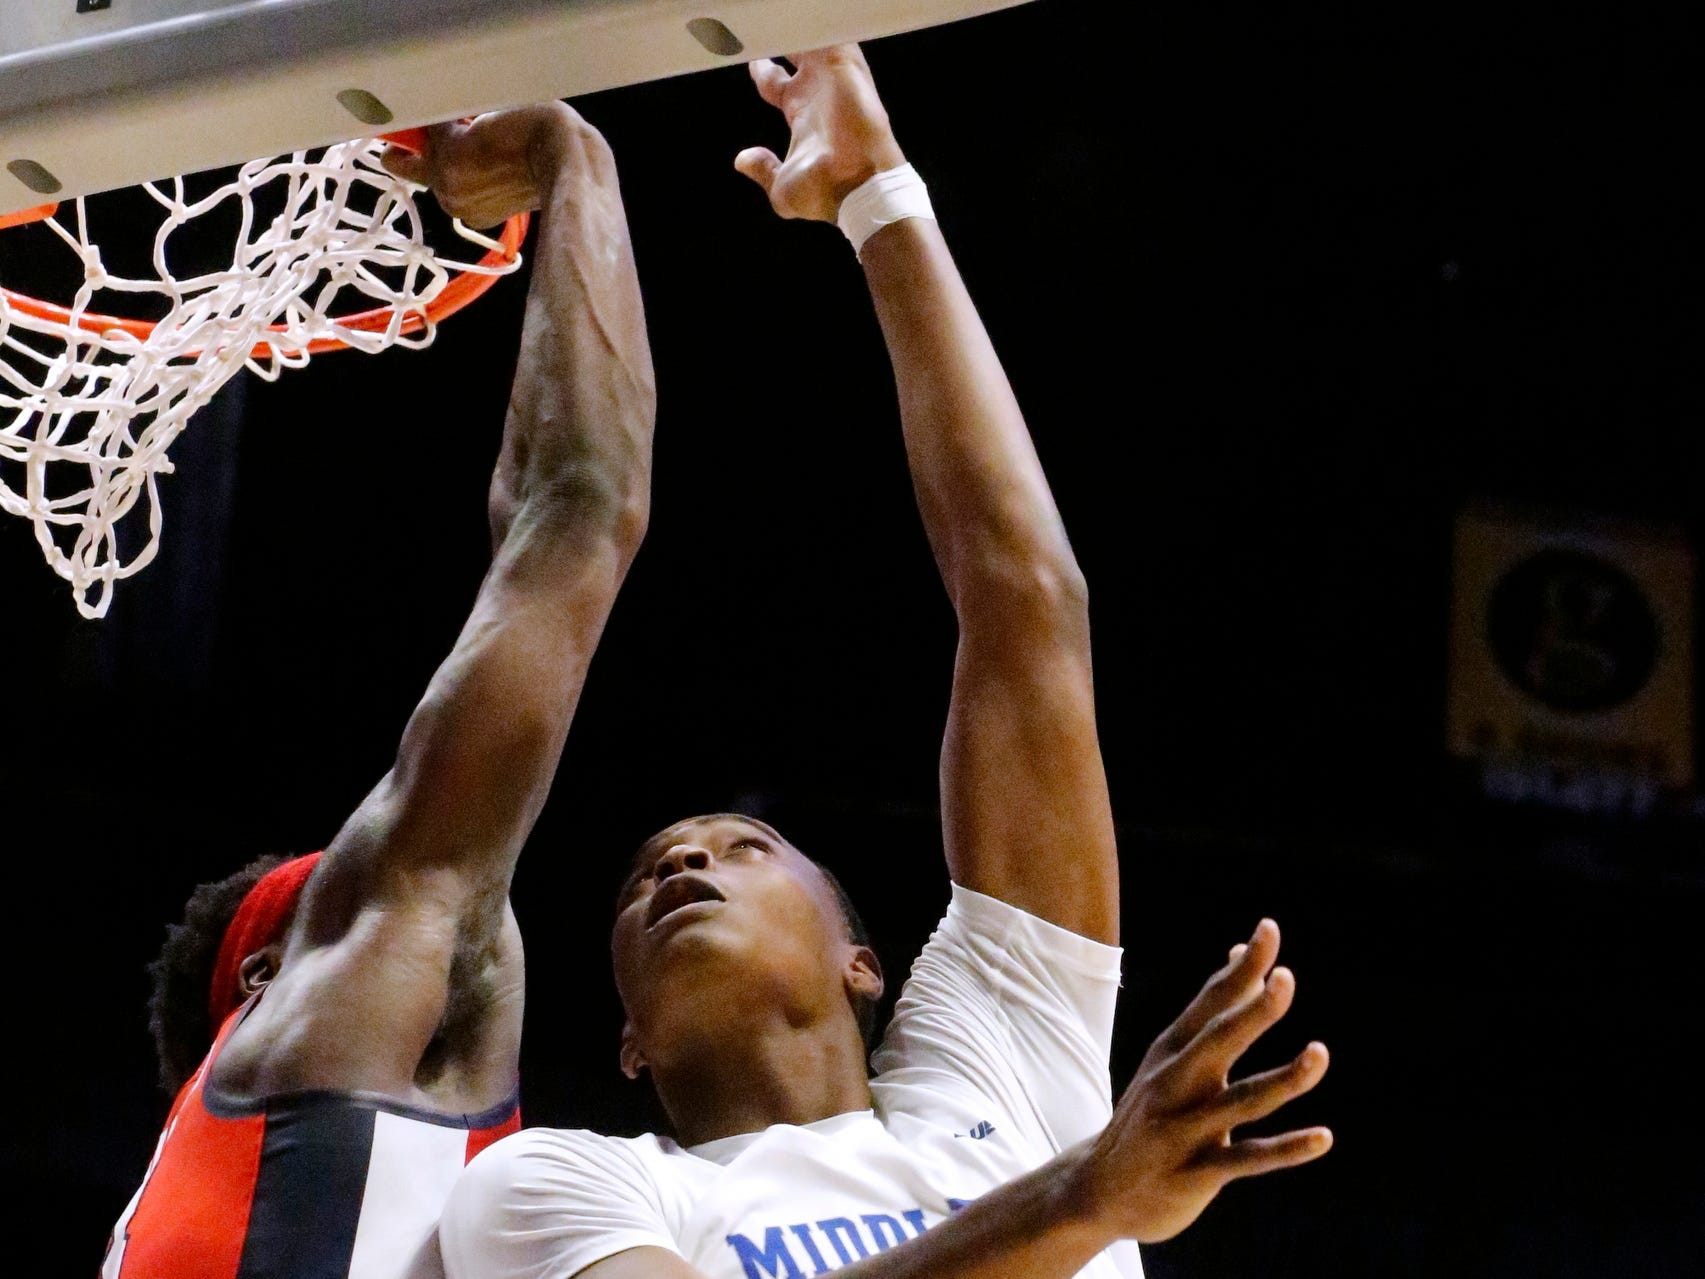 MTSU's forward Karl Gamble (25) goes up for a shot a Ole Miss' guard Terence Davis (3) defends him on Friday Dec. 21, 2018, at Bridgestone Arena.